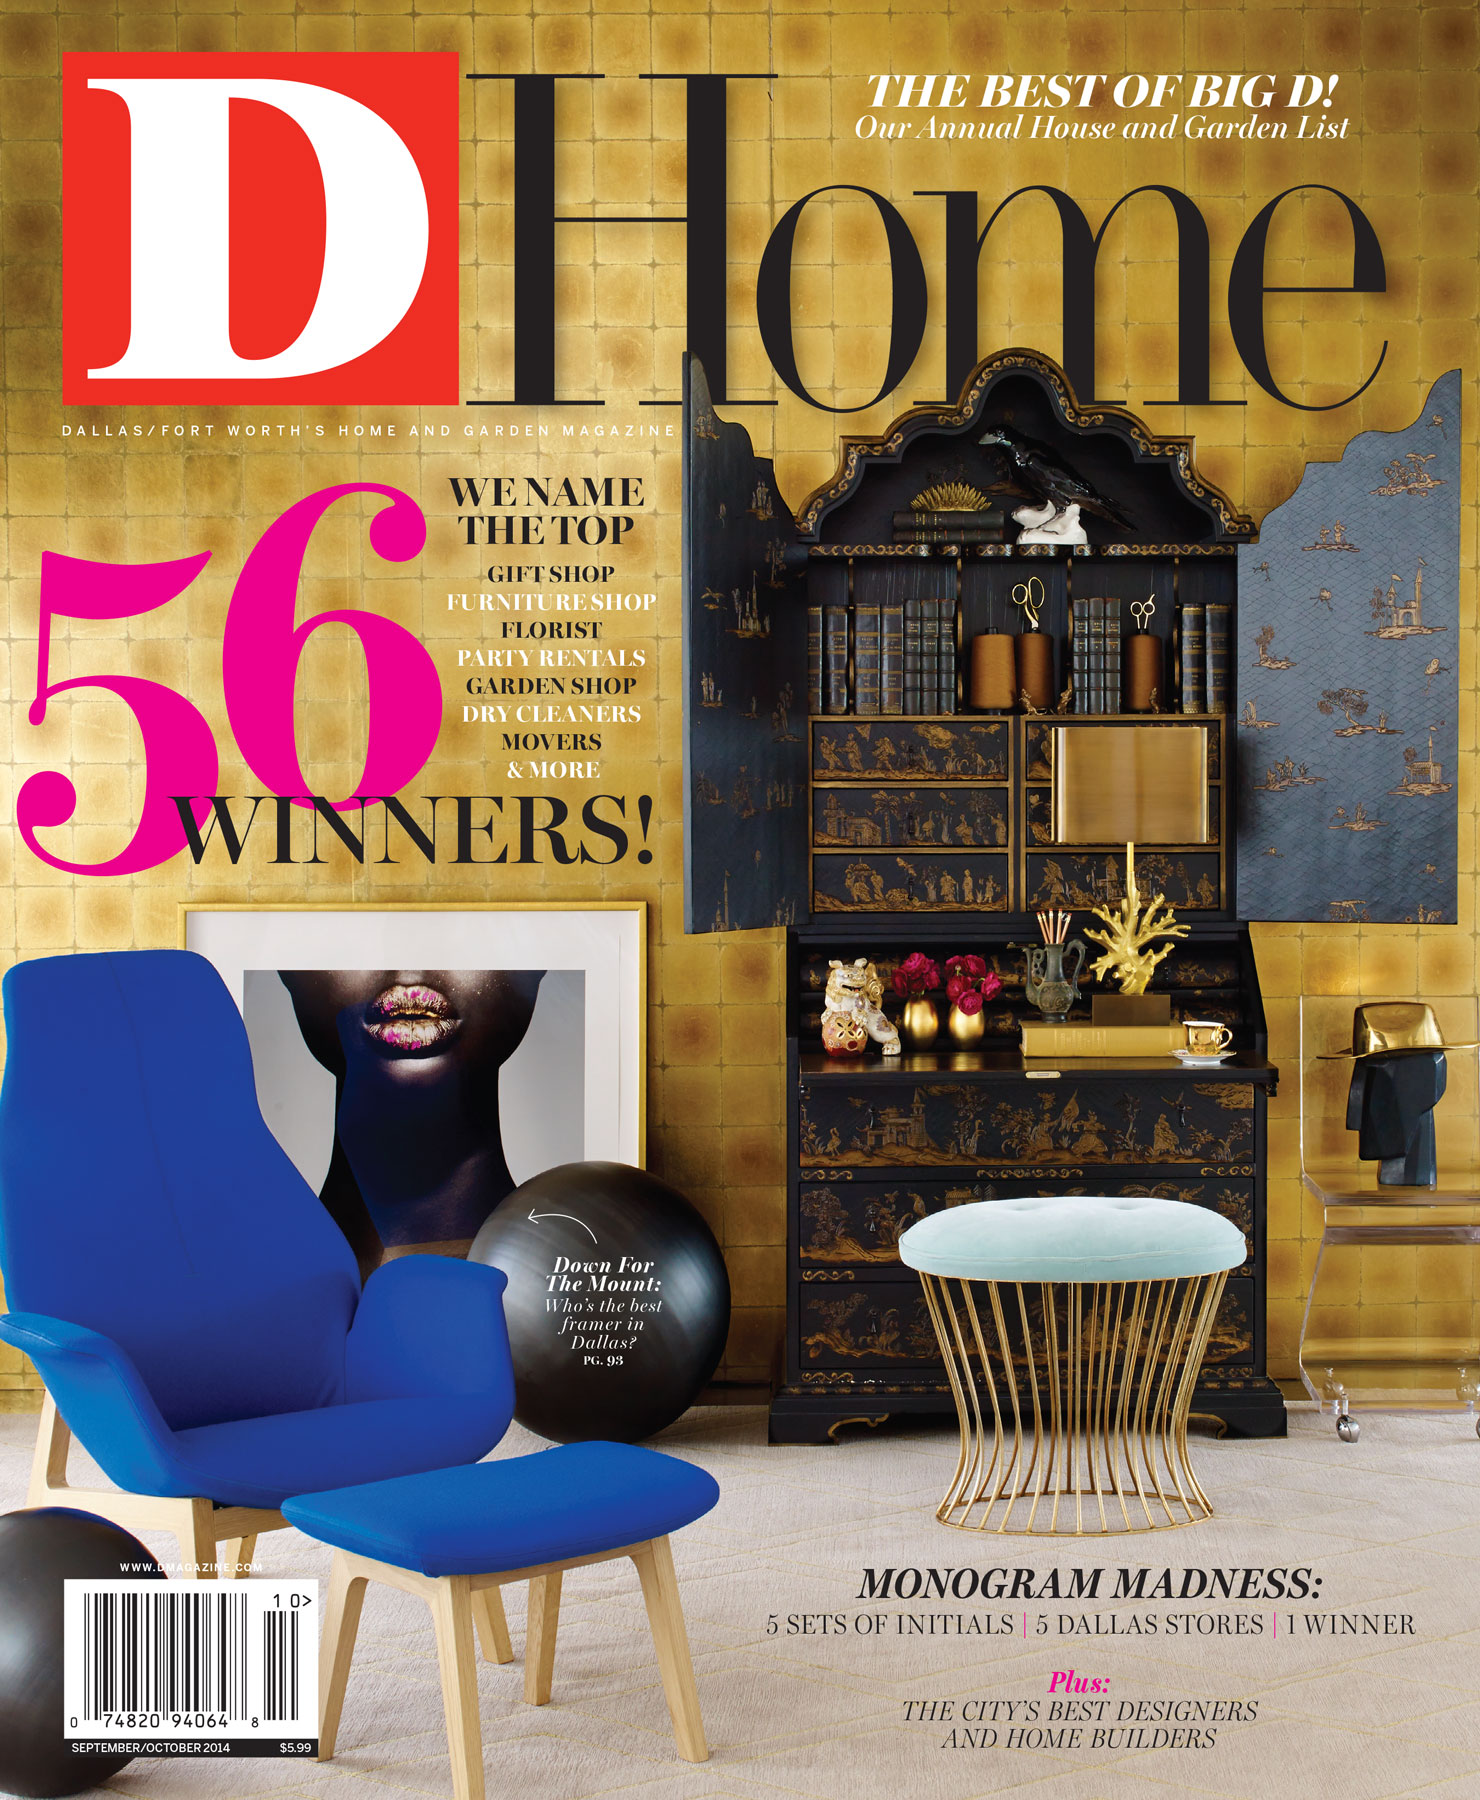 September-October 2014 cover